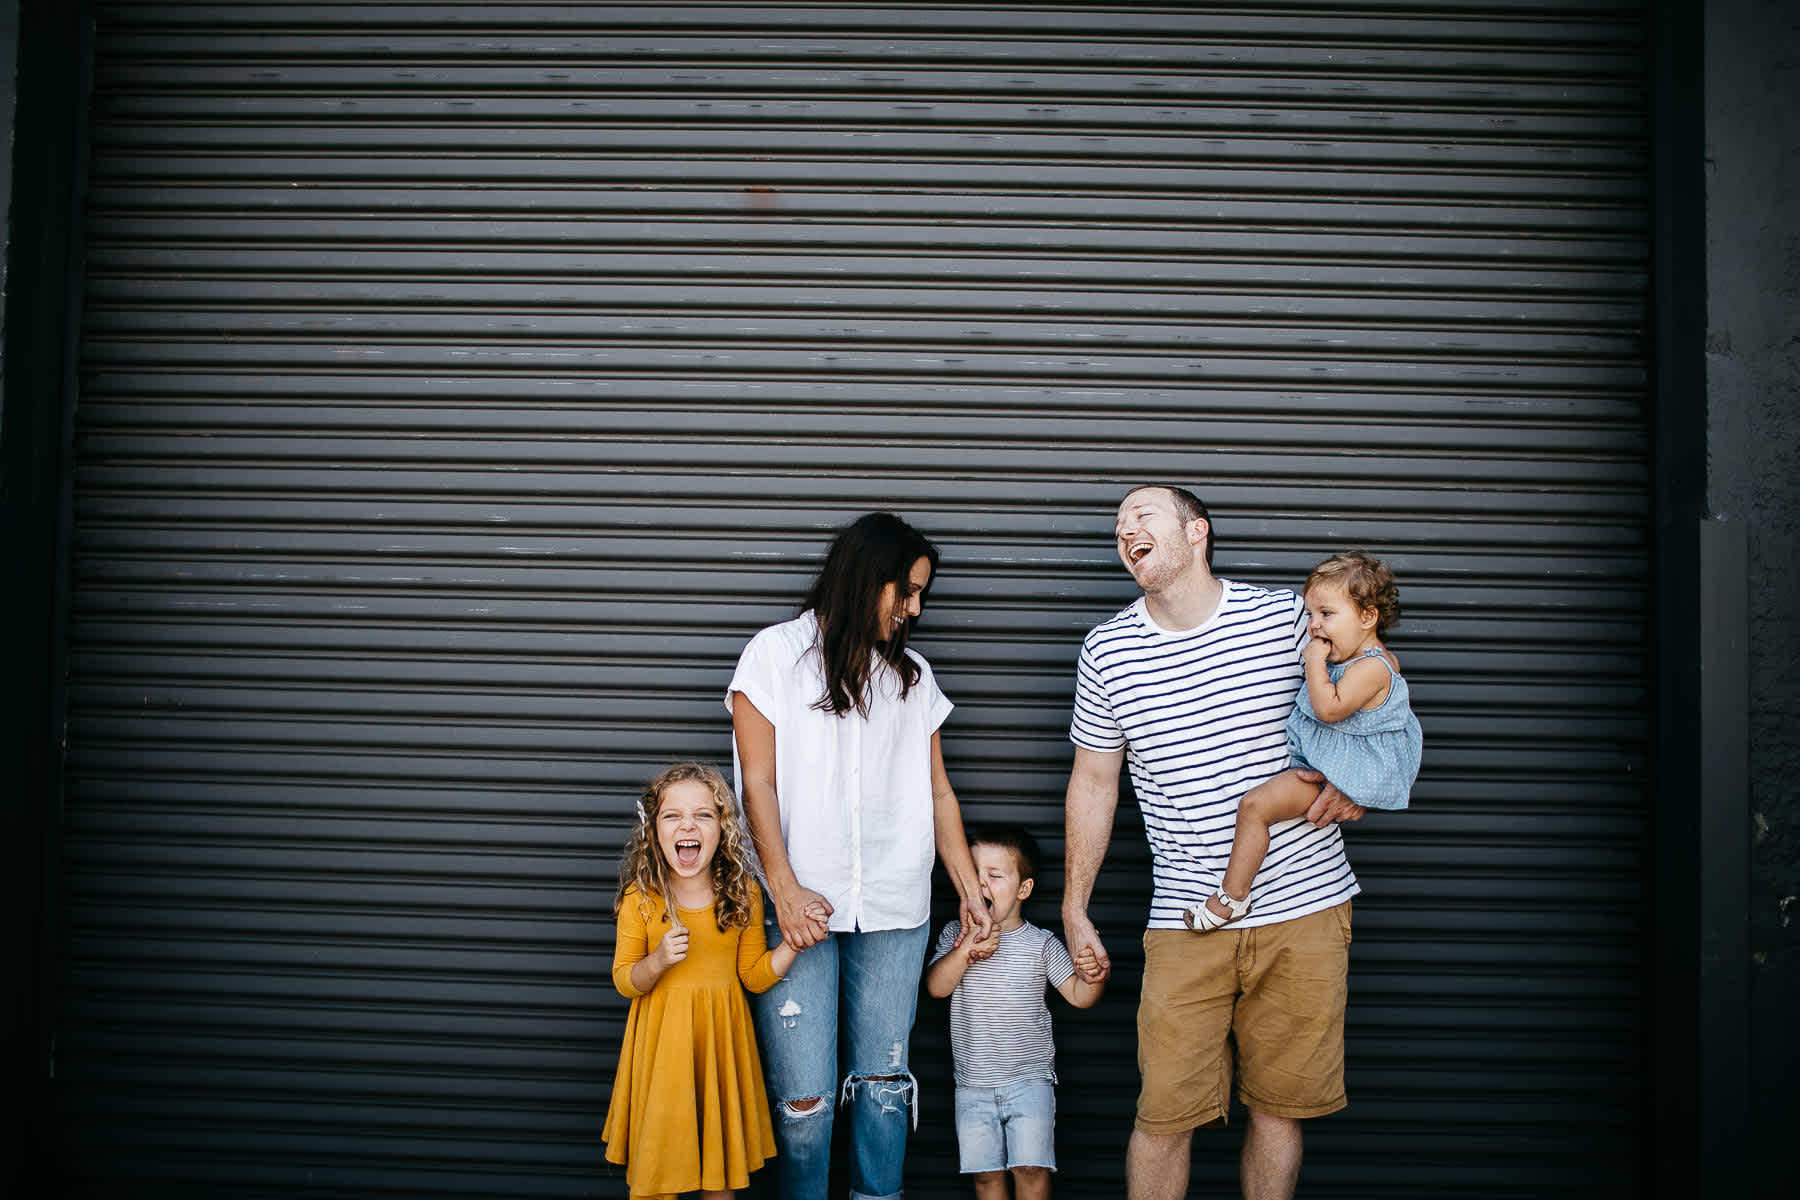 east-bay-san-francisco-urban-family-lifestyle-session-28